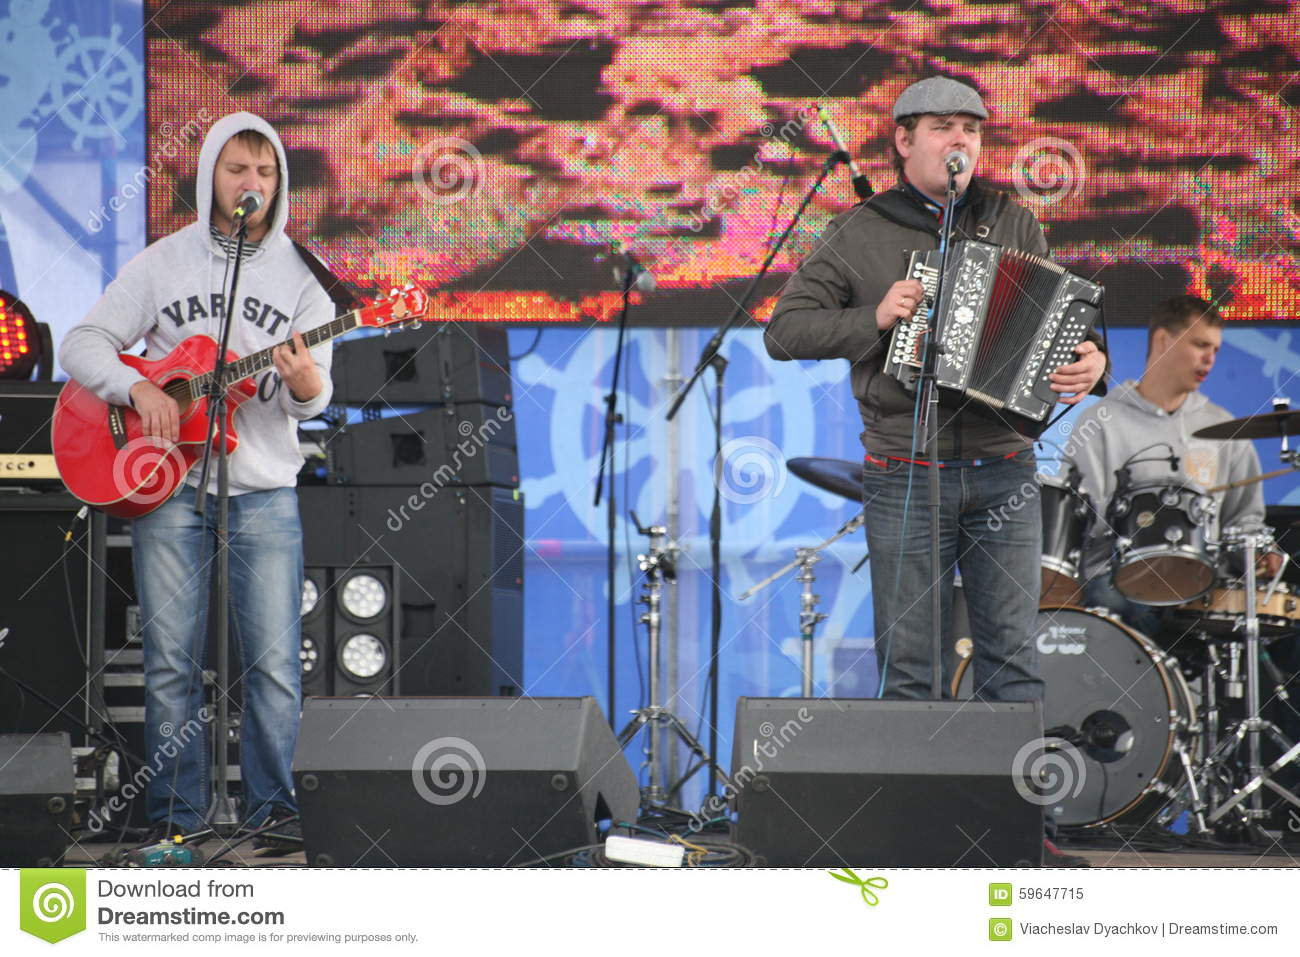 a review of the performance by the russian folk music group Music critic   the home of music reviews since 1998 - discover new music, read album reviews, browse bands, find new recommendations and your next favorite artist.